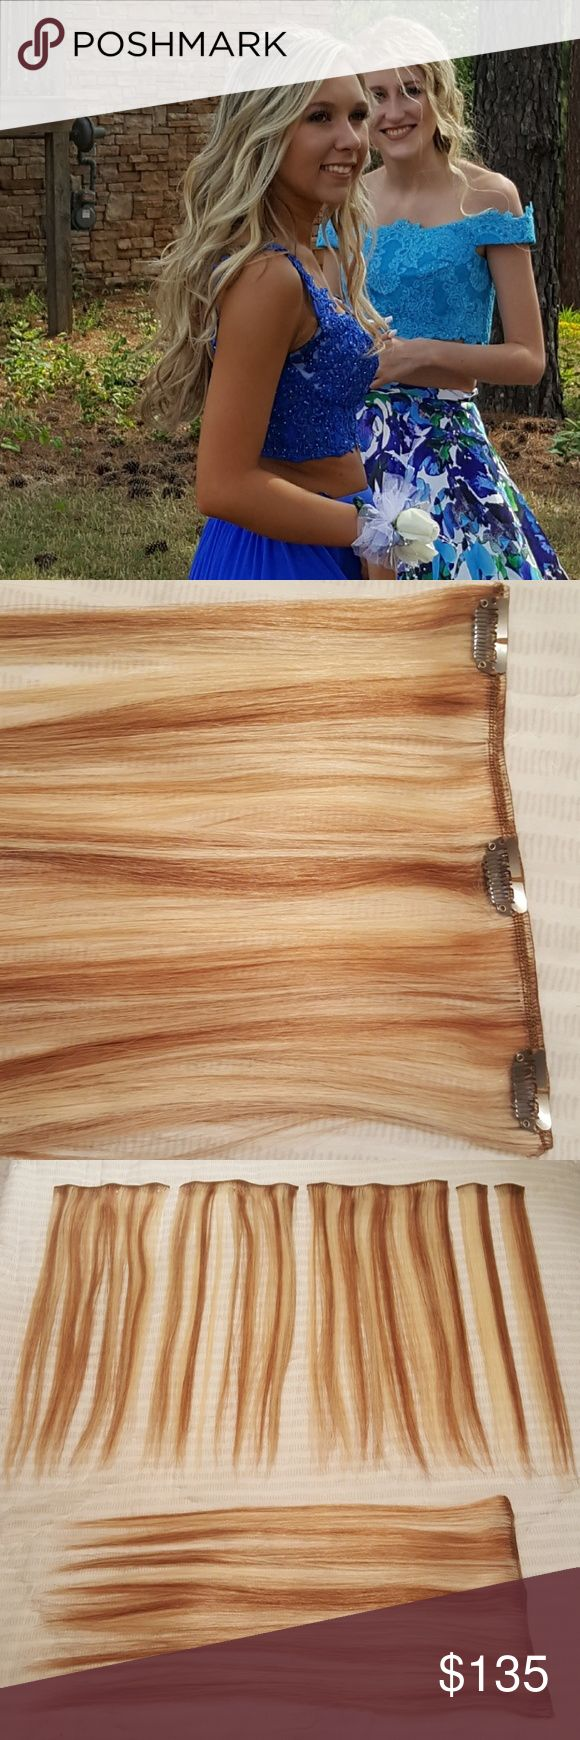 """REMY 14"""" clip in hair extensions Blonde Frost My daughter wore 6 of the pieces in this package last weekend. The ones she wore have been washed and re-straightened. Also throwing in a free Pink Satin Storage Case. 100% Human Hair, can be cut, washed, dyed, curled or straightened. 14"""" long.   Euronext Remy Clip-in 14-Inch Human Hair Extensions package contents include?one?8"""" wide weft,?one?7"""" wide weft,?one?6"""" wide weft,?one?5-3/4"""" wide weft,?four?1-1/2"""" wide weft,?two?1"""" wide wefts with no…"""